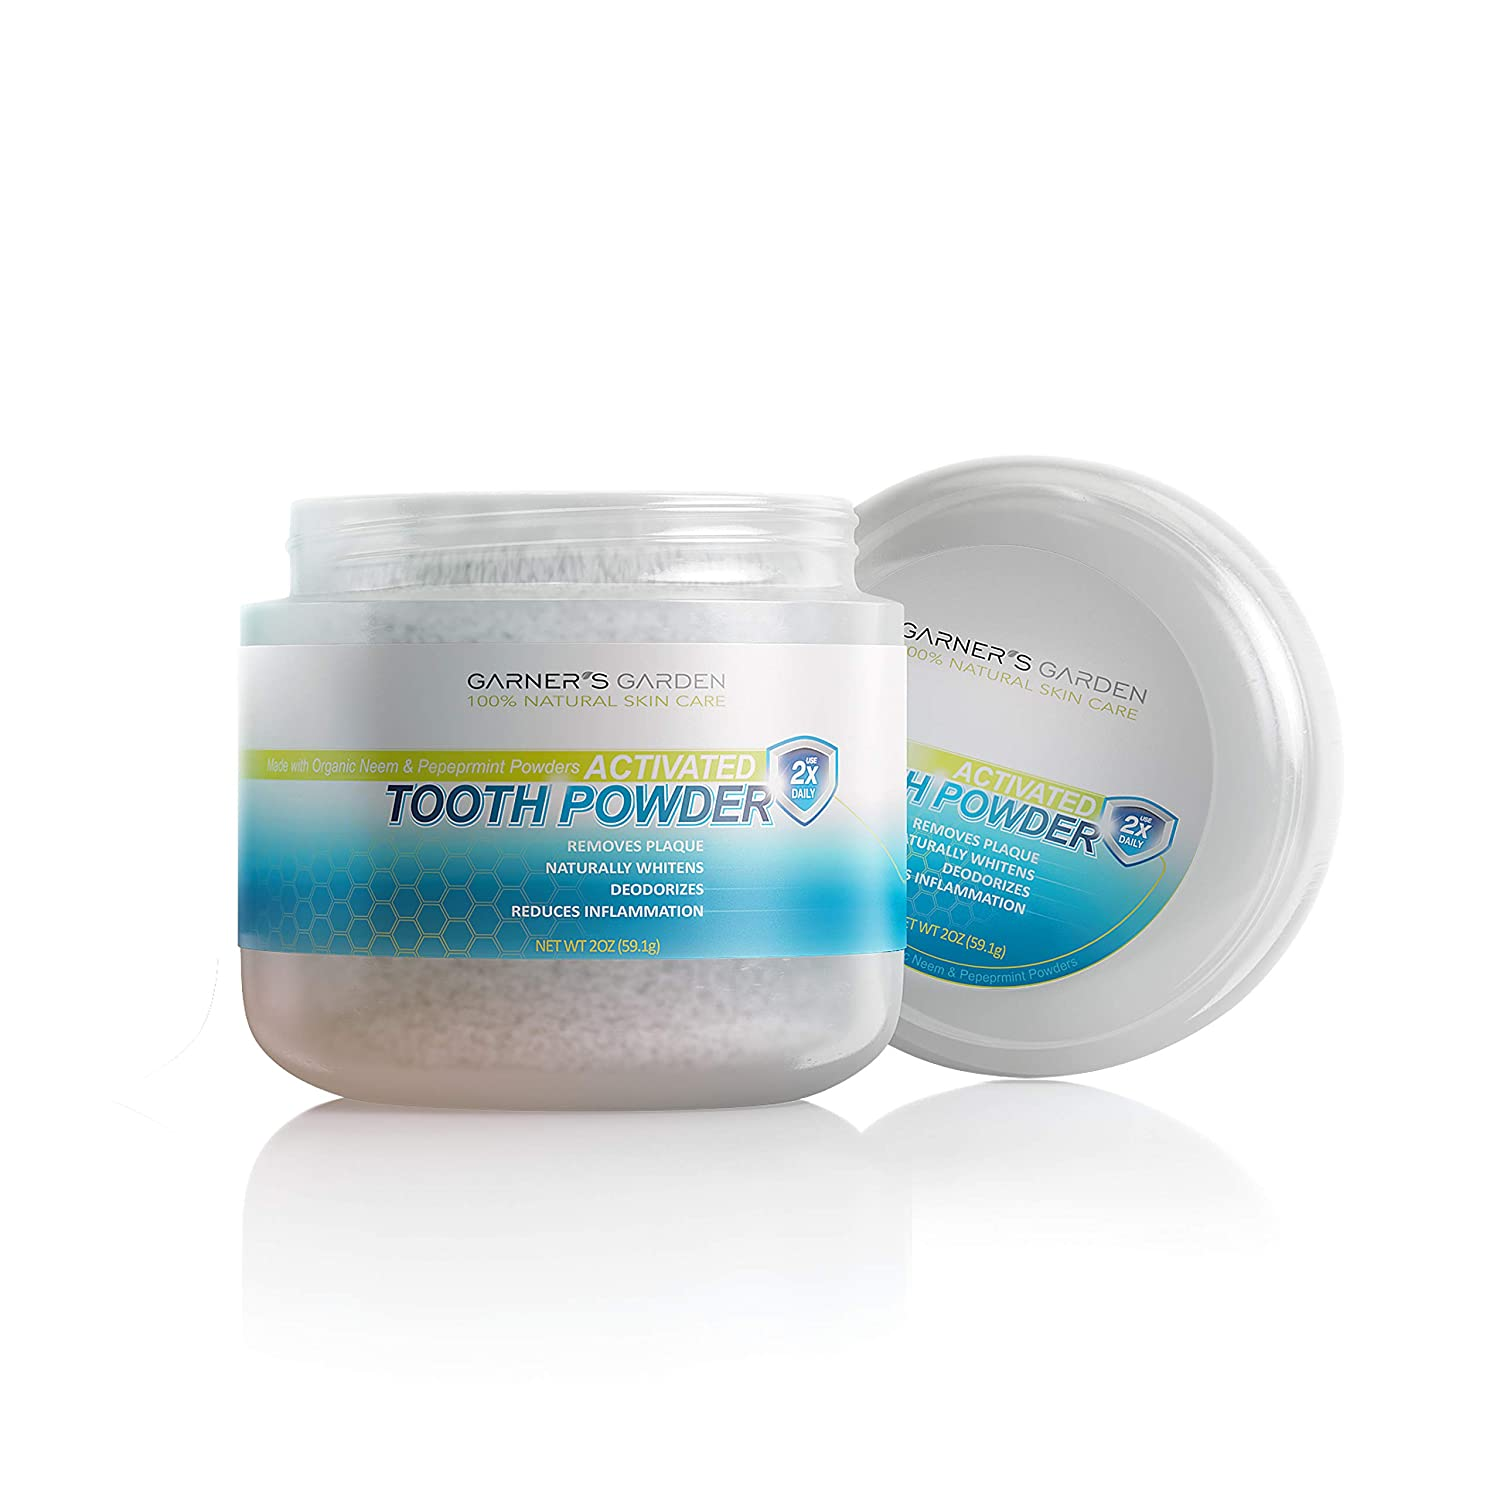 Garner's Garden Activated Tooth Powder 2 oz, Flouride Free, Remineralizes, Removes Plaque, Naturally Whitens, Deodorizes, Reduces Inflammation